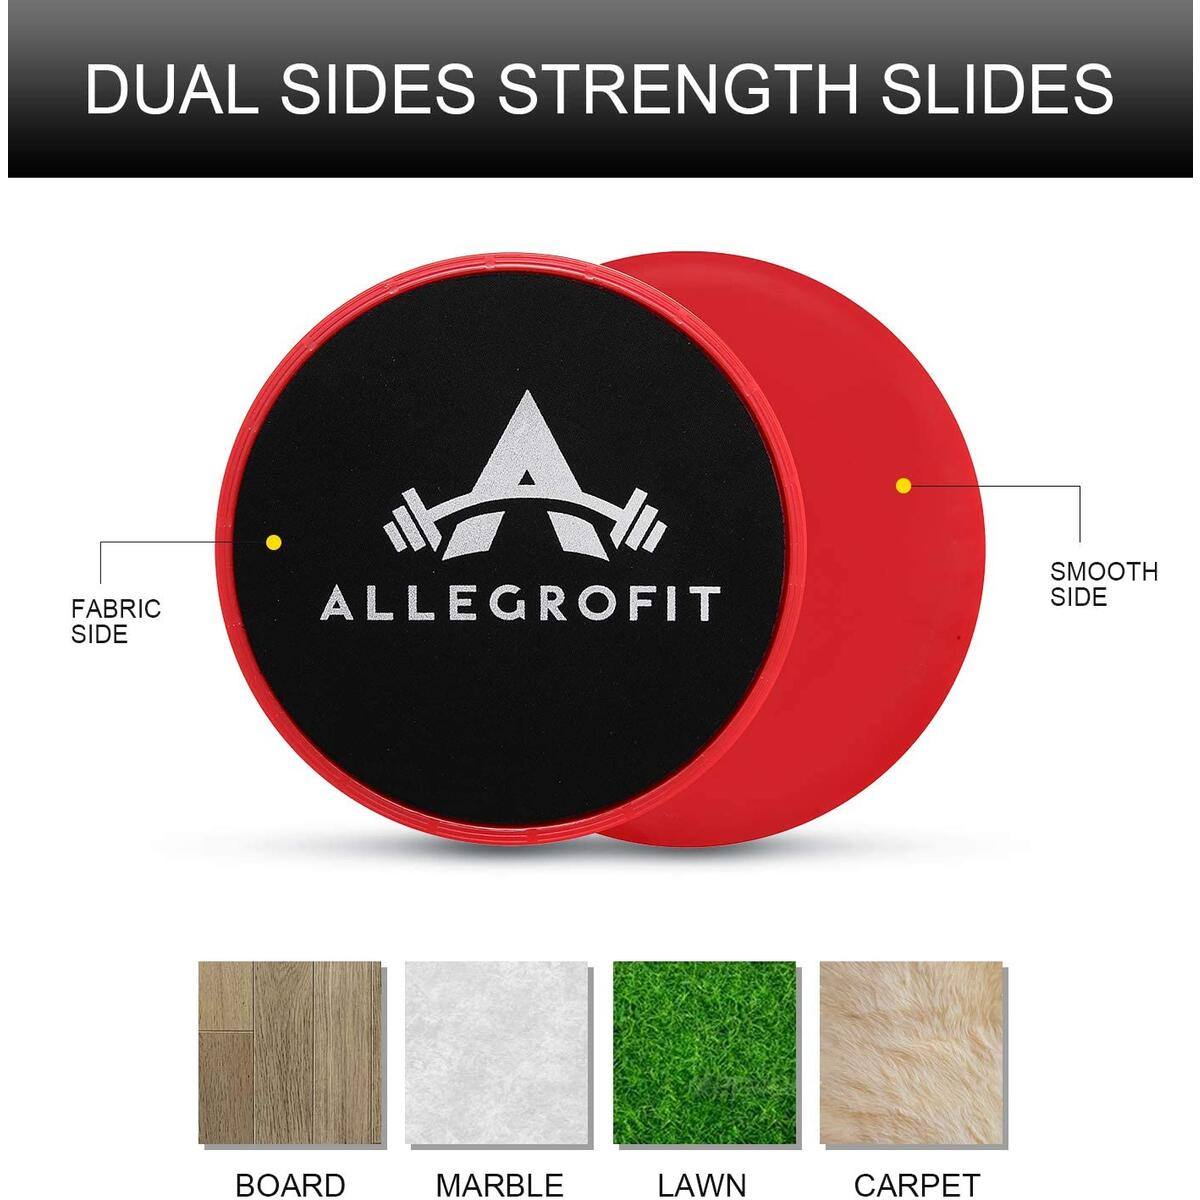 AllegroFit Dual Sided Core Strength Sliders set with Carry Bag & Manual.